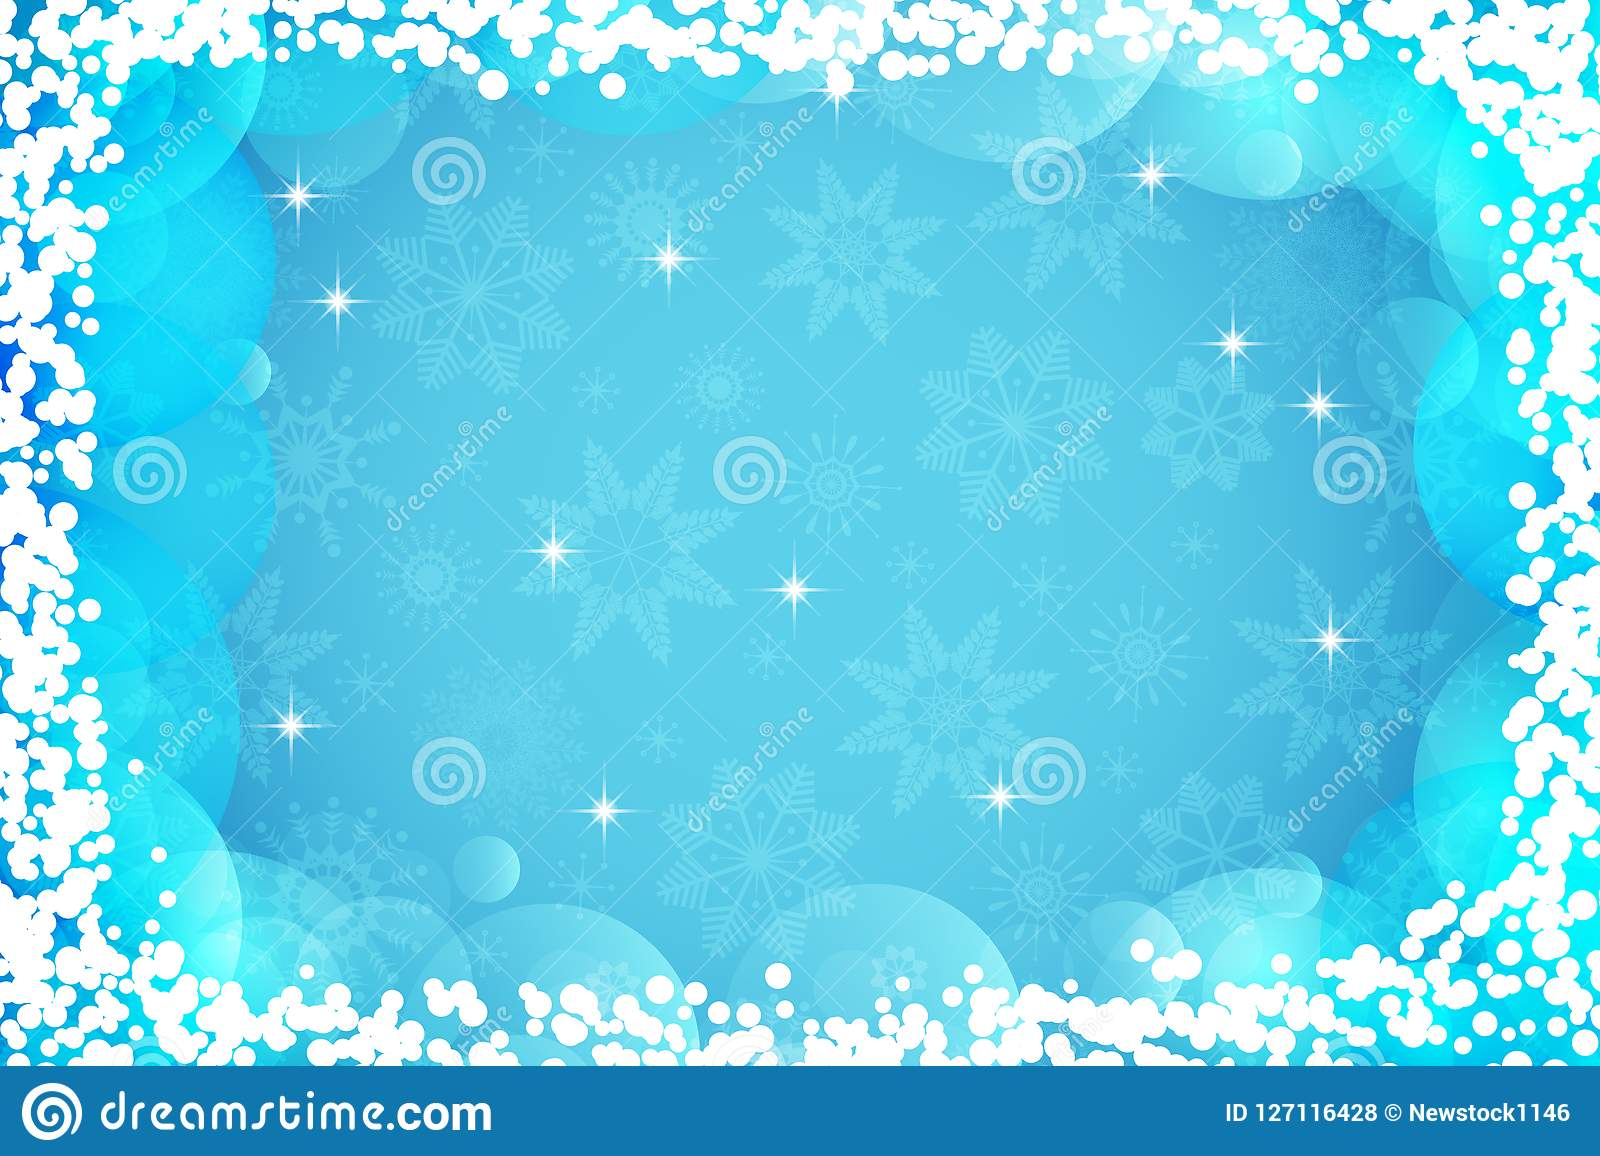 winter background for holidays greeting cards merry christmas and happy new year backdrop abstract